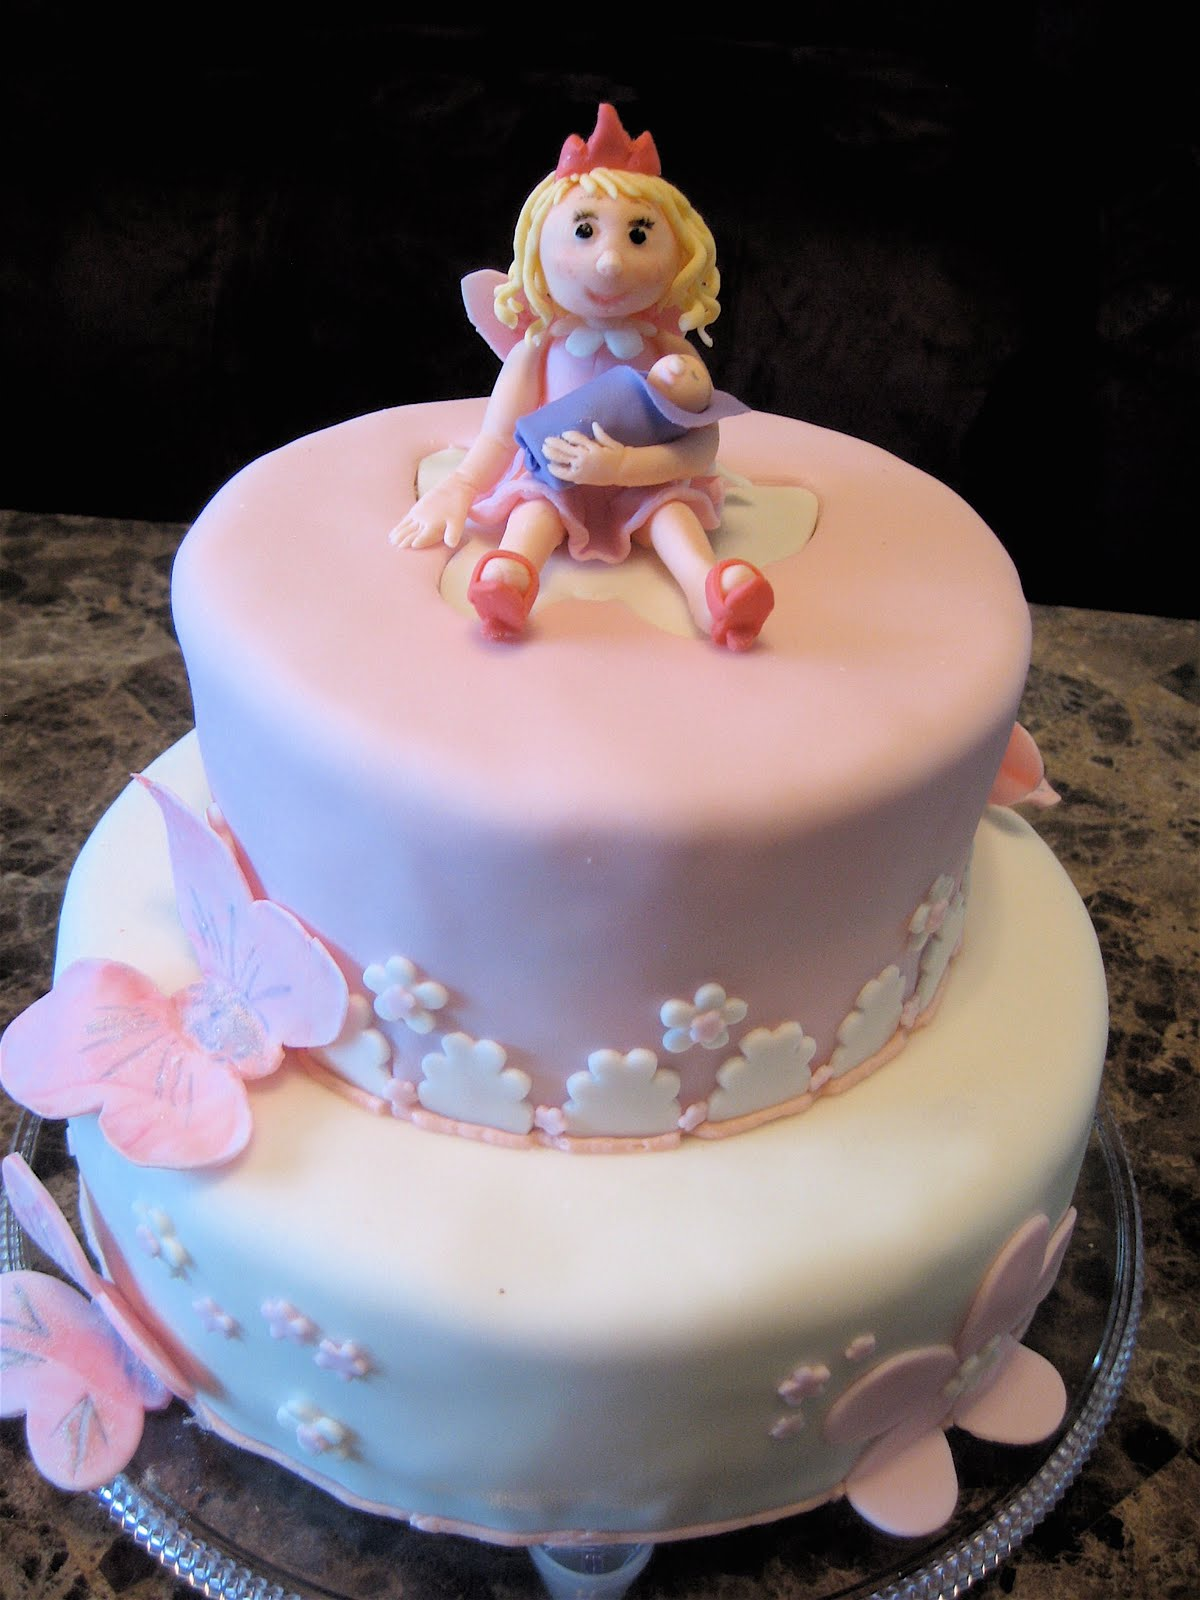 Birthday Cake For Baby Doll ~ Linsey s creative cakes baby doll cake